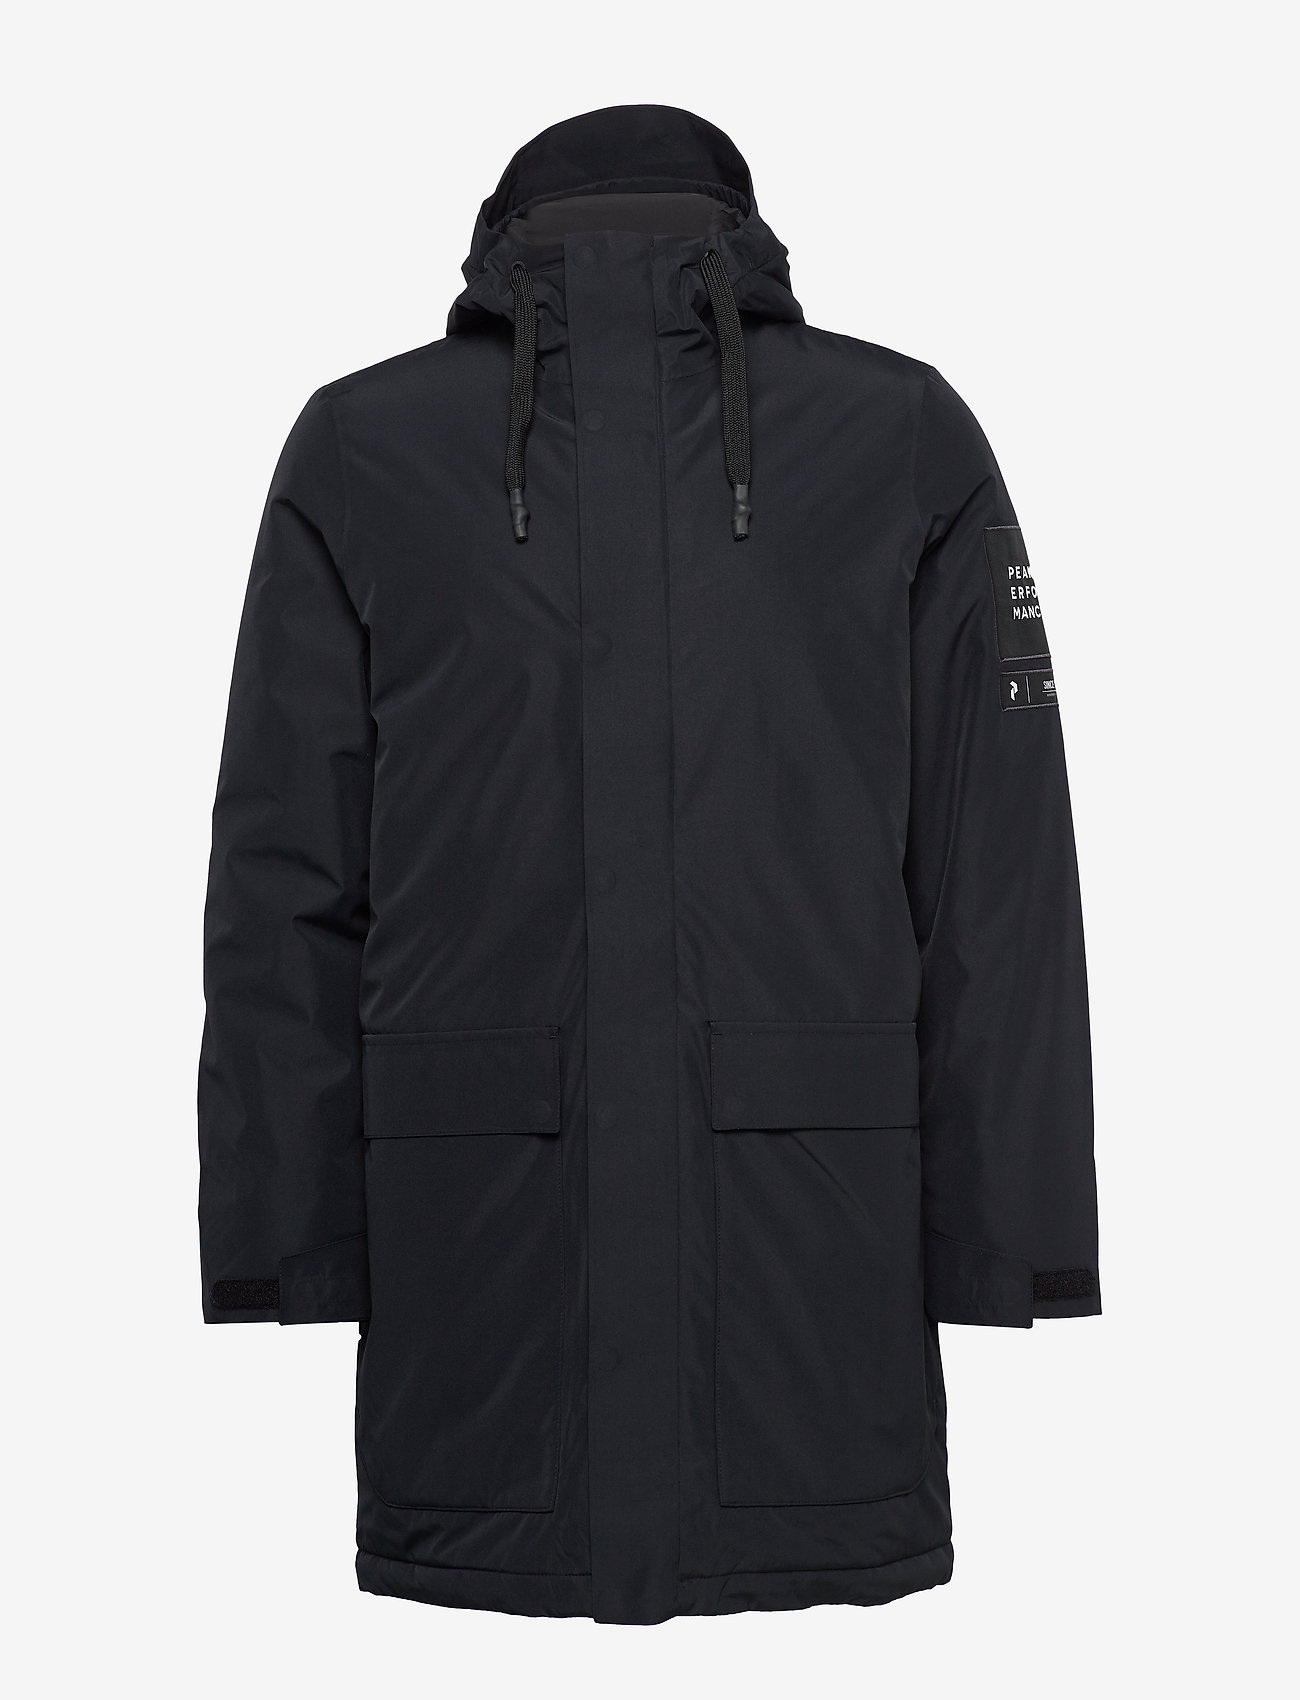 Peak Performance - UNIT J - insulated jackets - black - 1